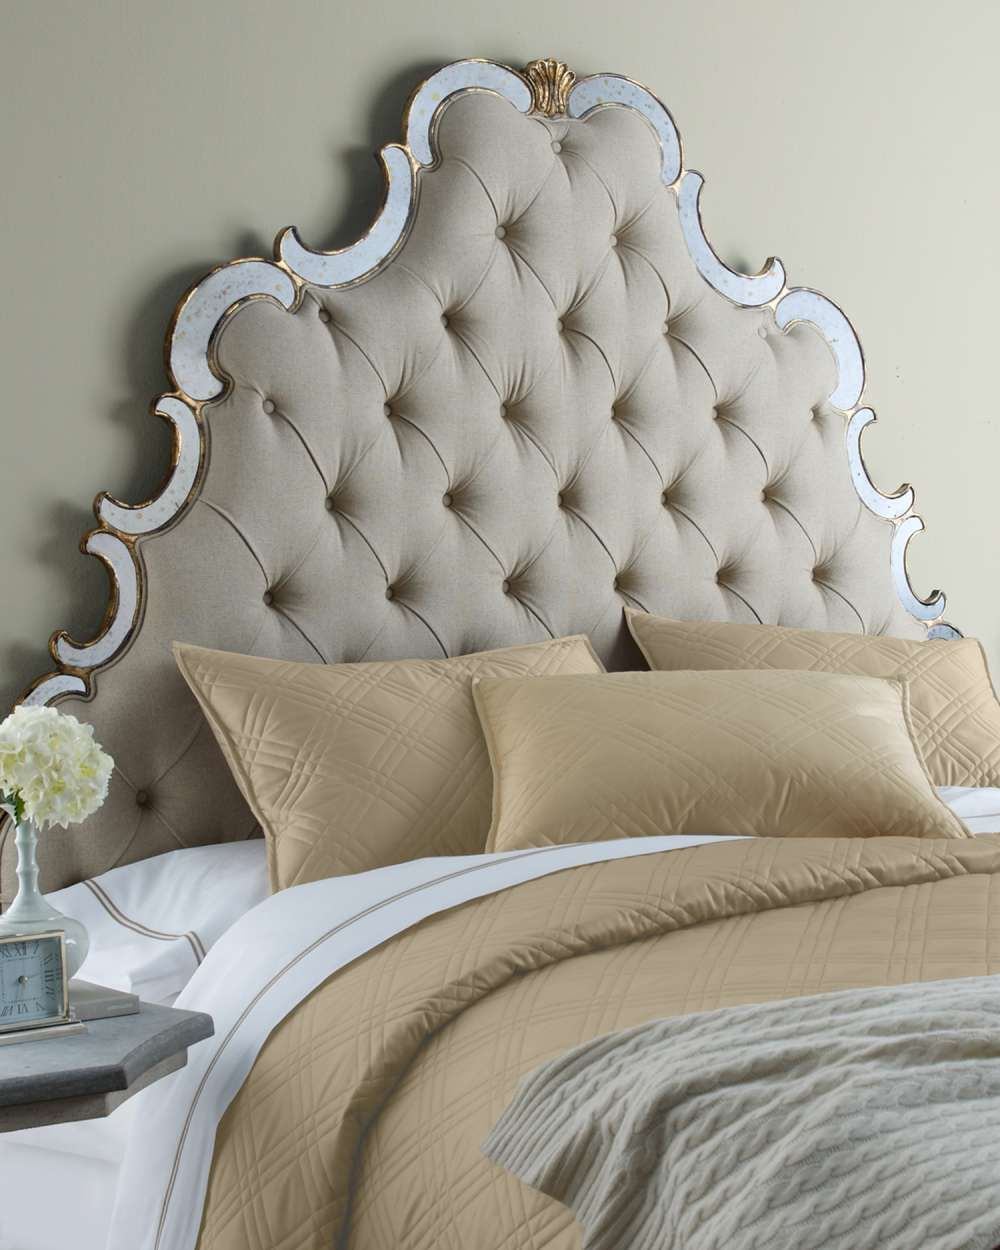 1000 Images About Upholstered Headboards On Pinterest Head. Large Fabric Headboards   Headboard Designs